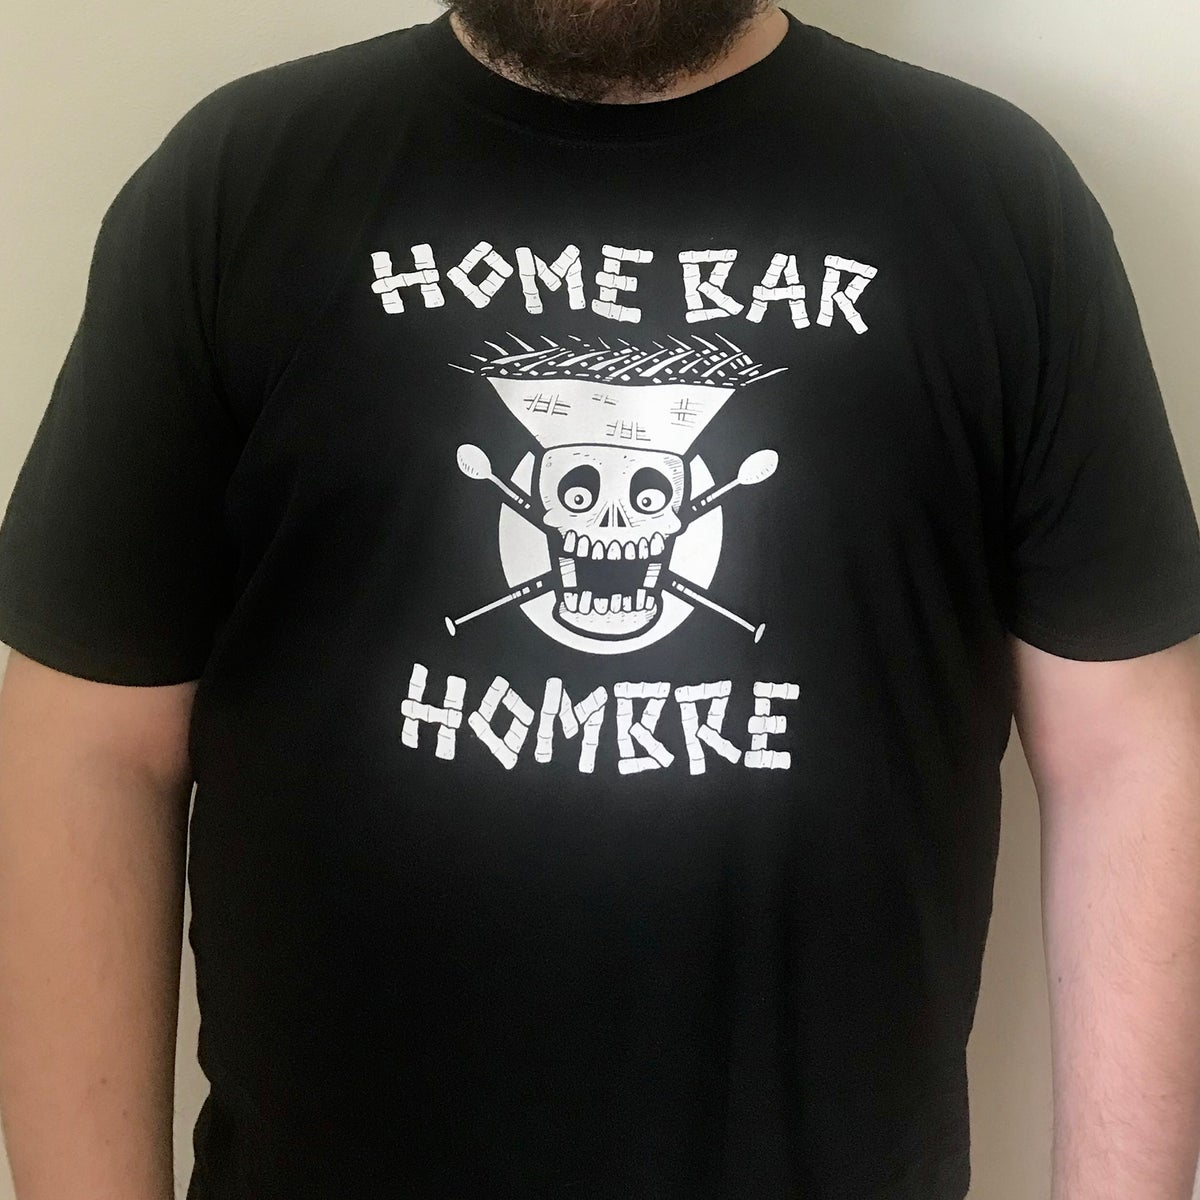 HOME BAR HOMBRE Men's T-Shirt